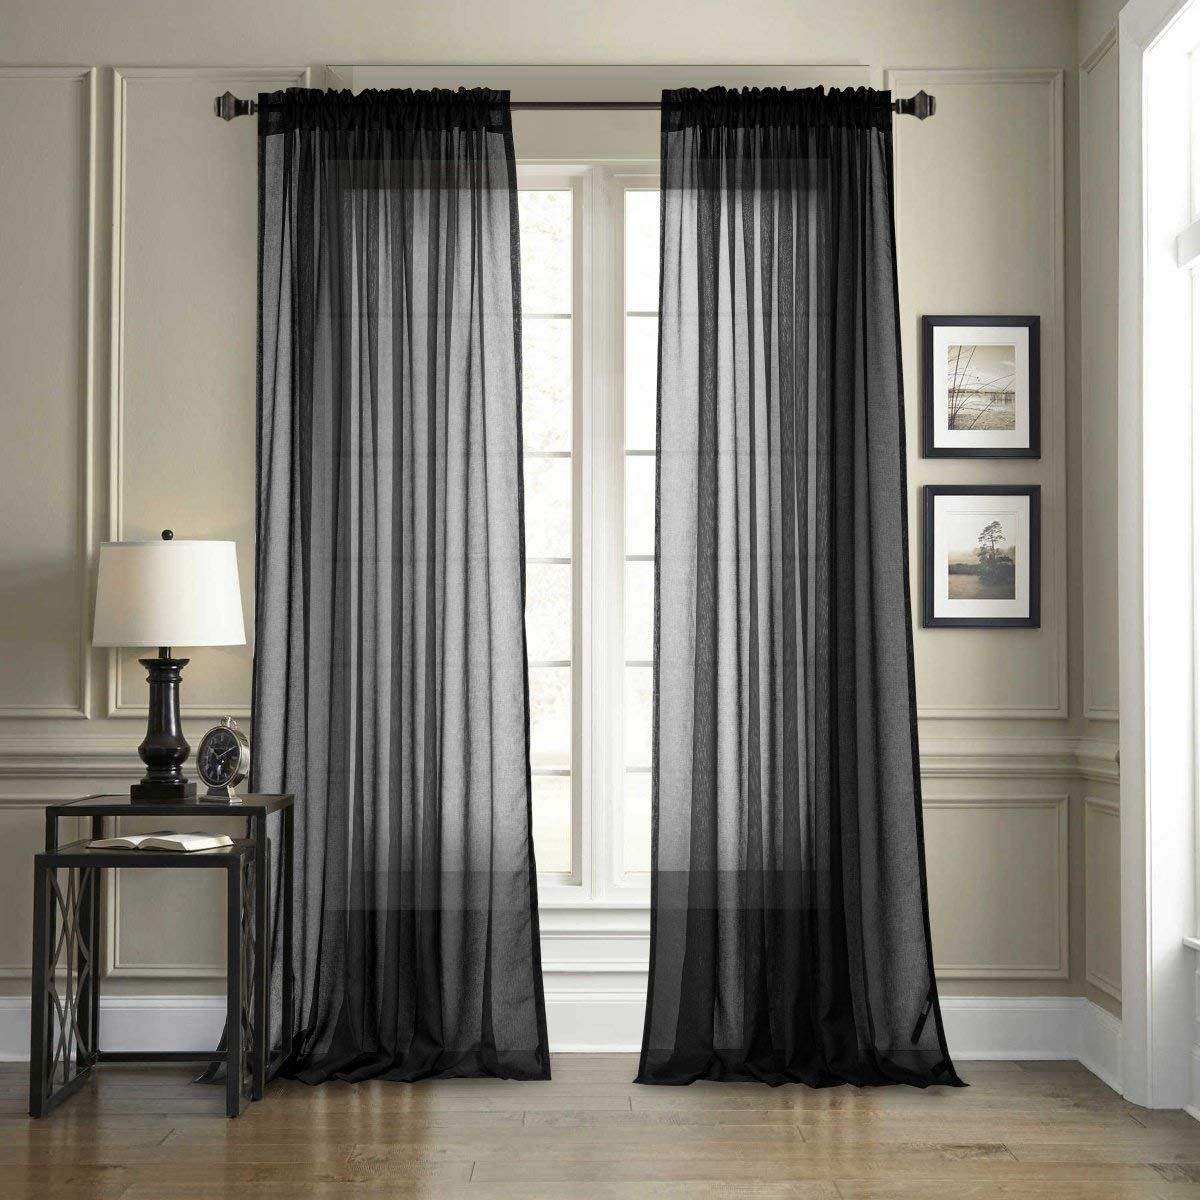 2 Pieces Black Sheer Curtains Voile Window Curtain Rod Pocket